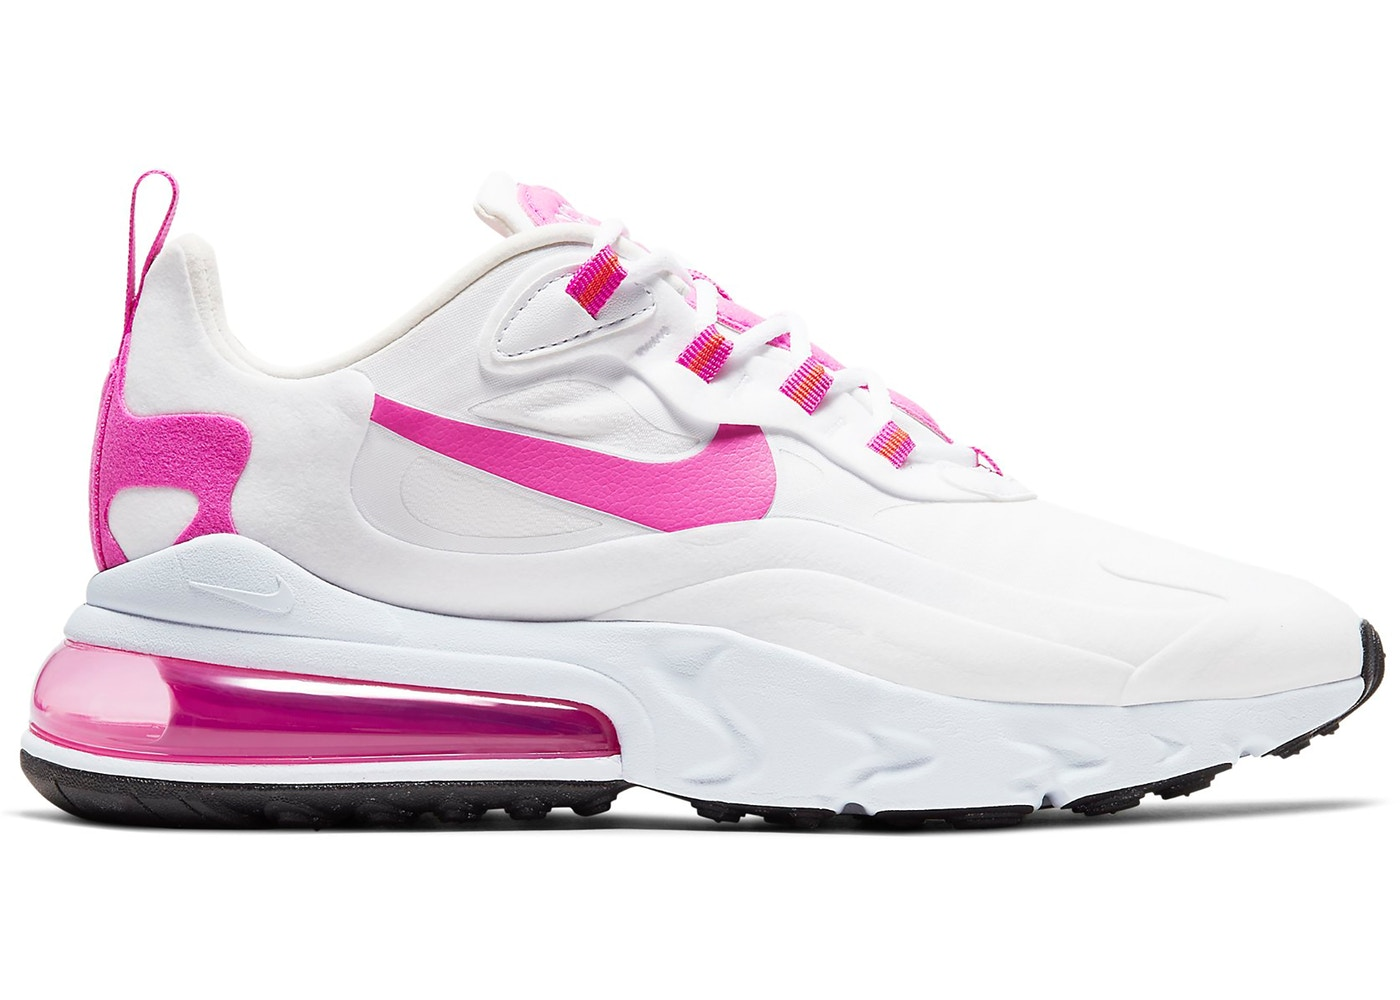 Nike Air Max 270 React White Fire Pink W Cj0619 100